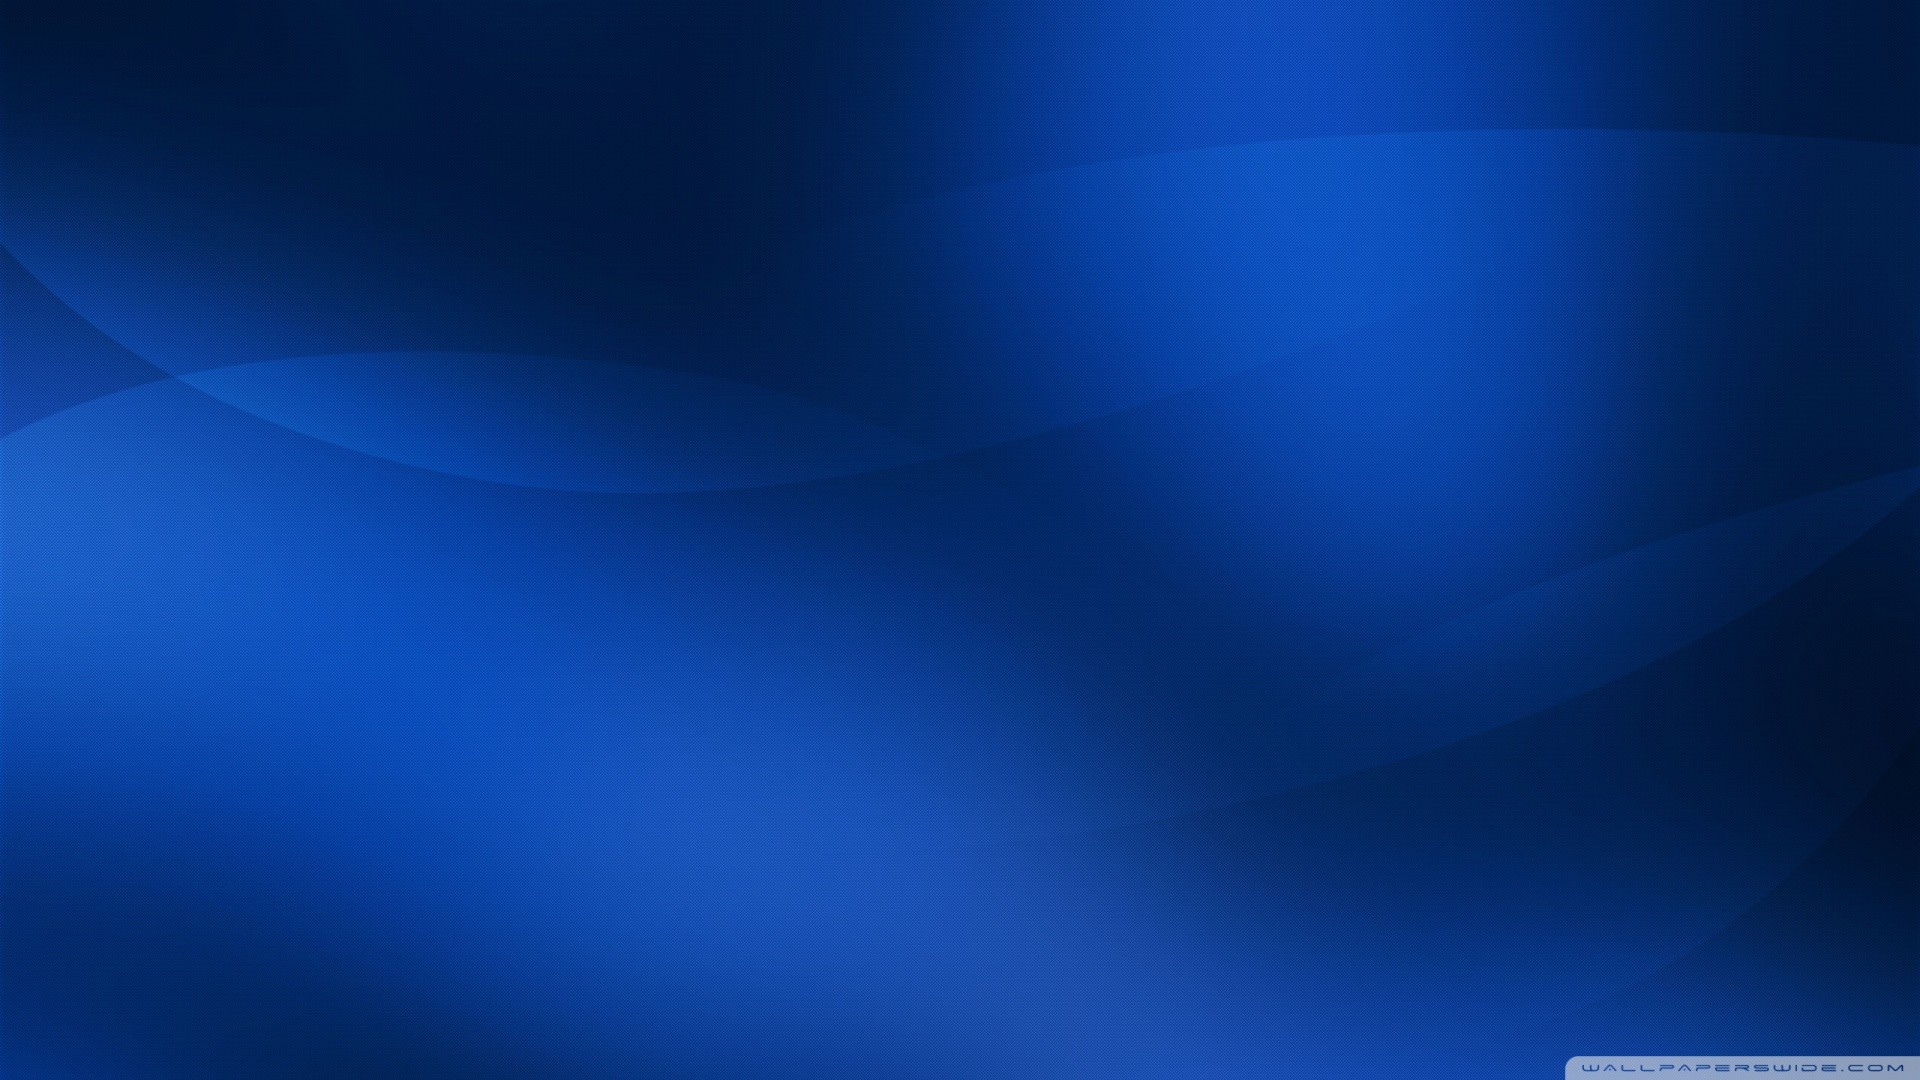 Res: 1920x1080, Blue Wallpapers 8 - 1920 X 1080